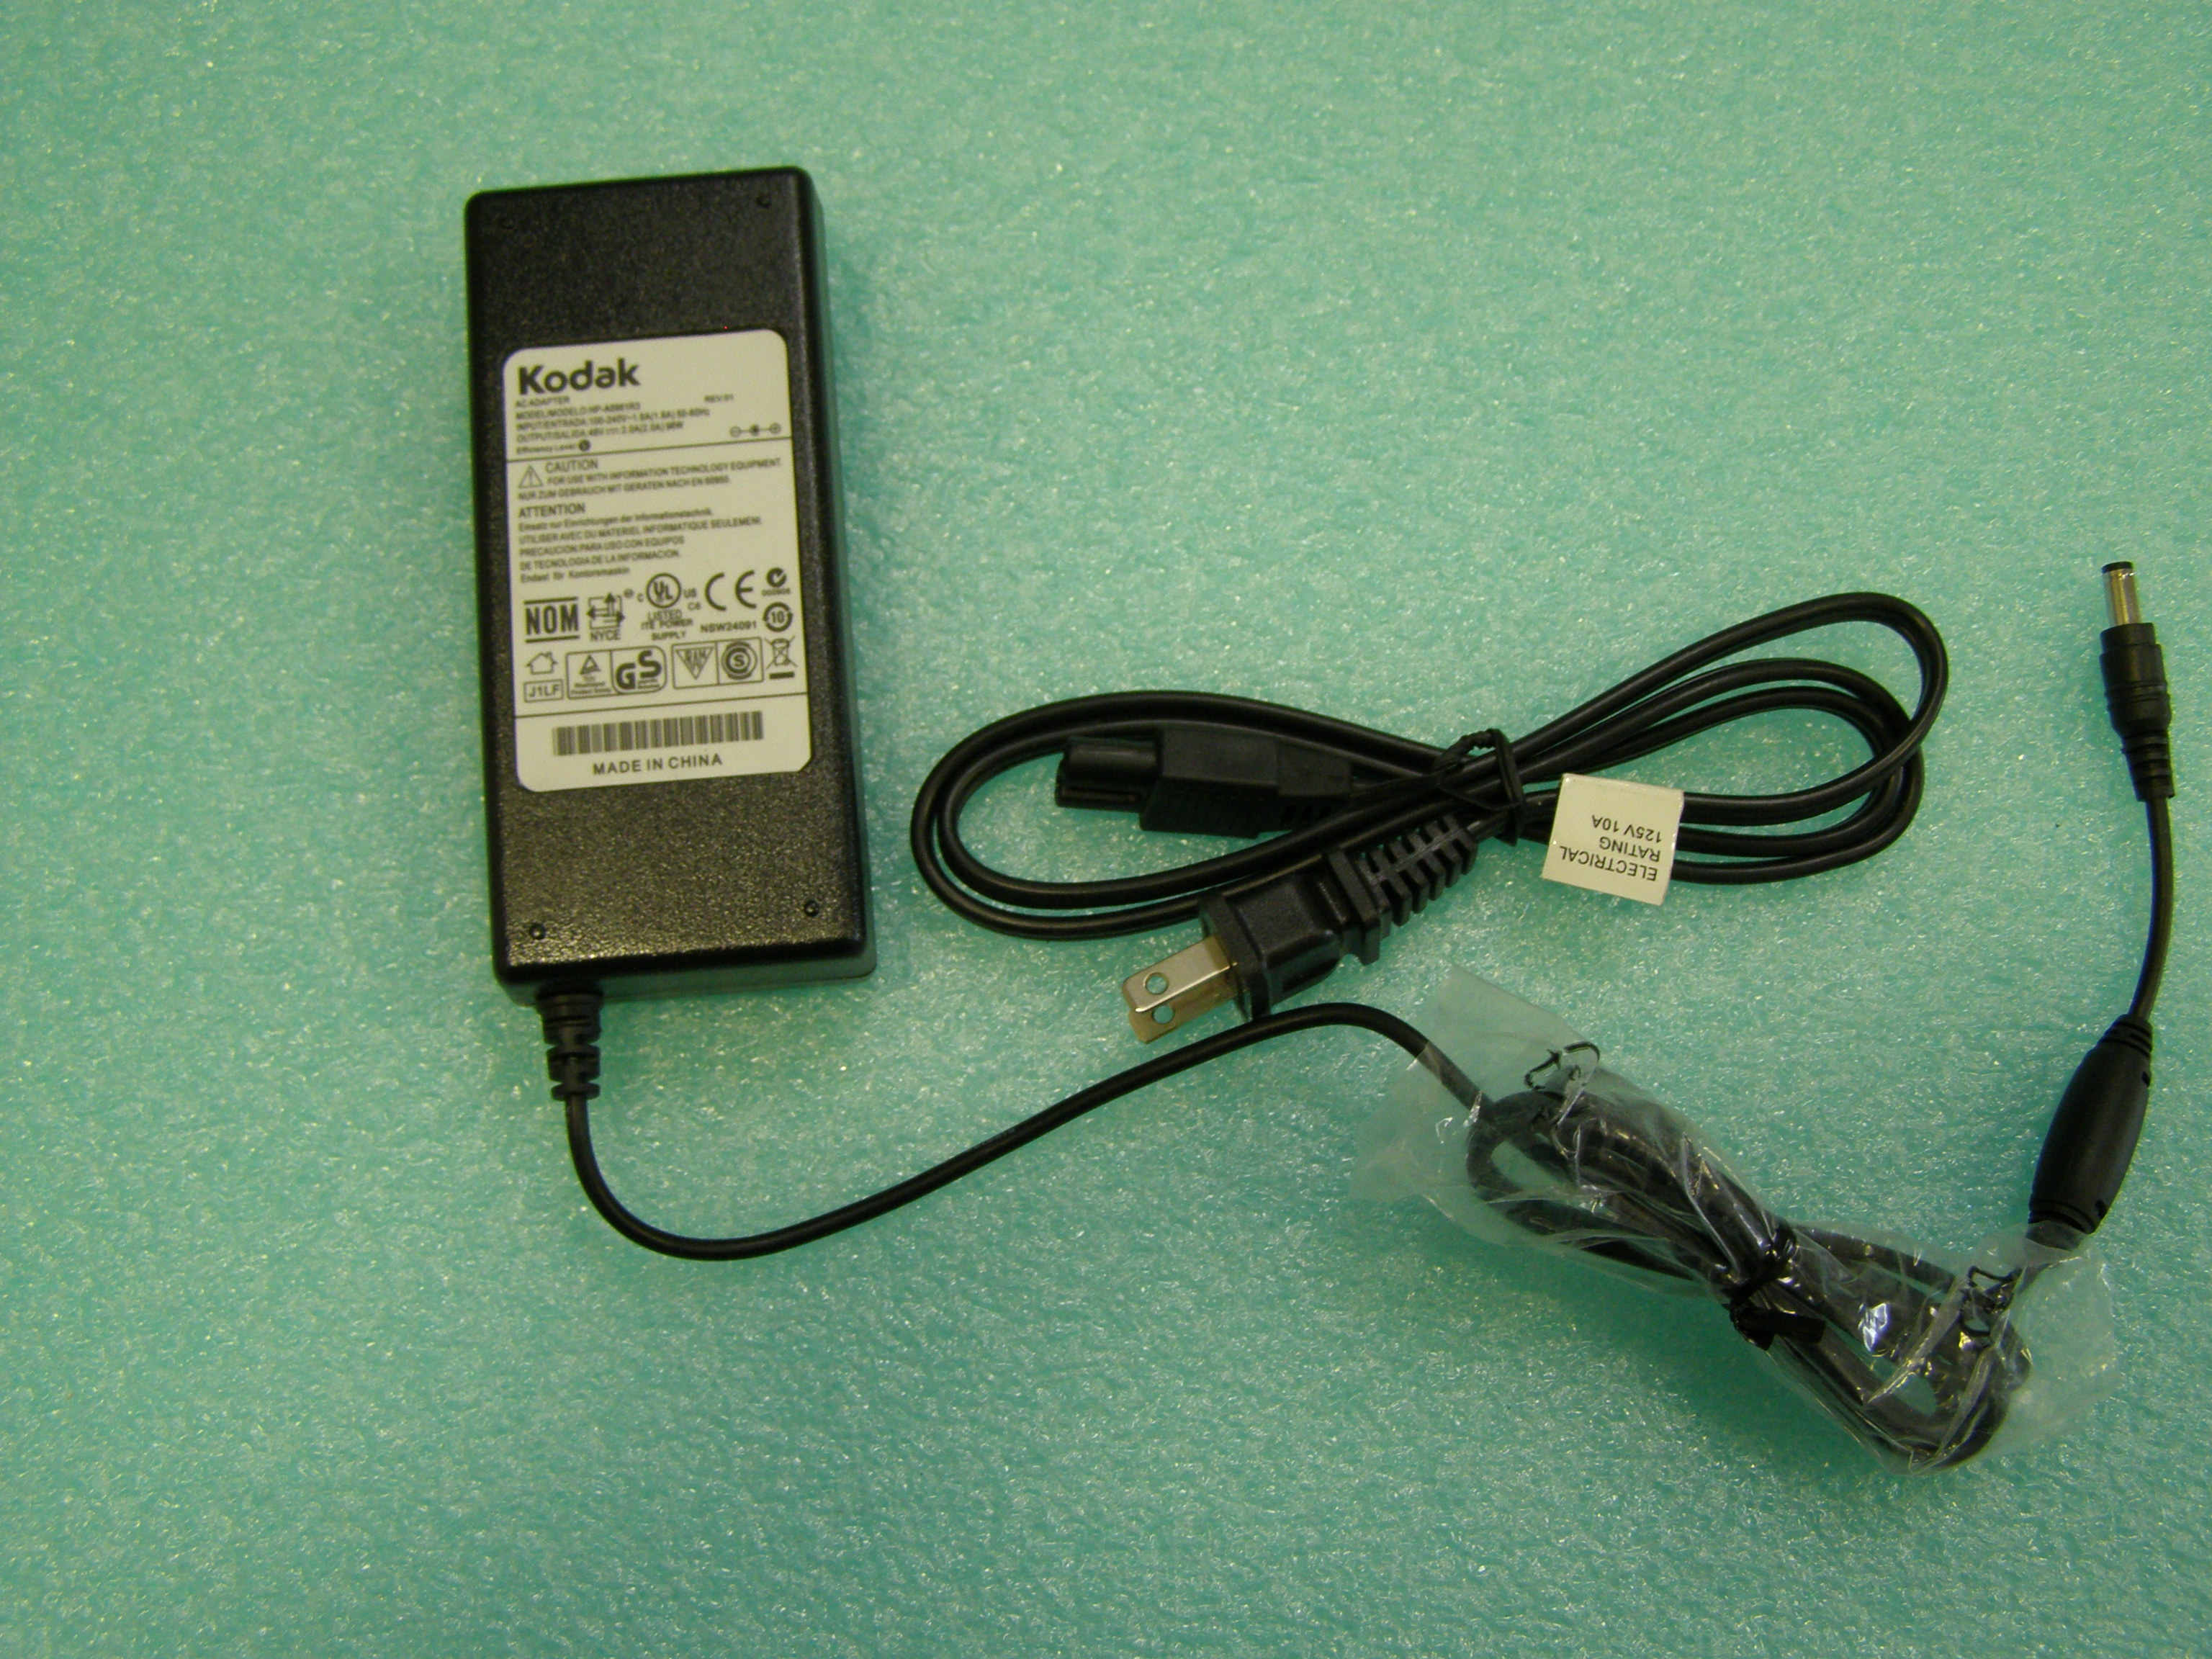 CCTV Suppliers SST482 48VDC, 2A Power Supply With Barrel 5.5/2.1mm, 3-Prong-2